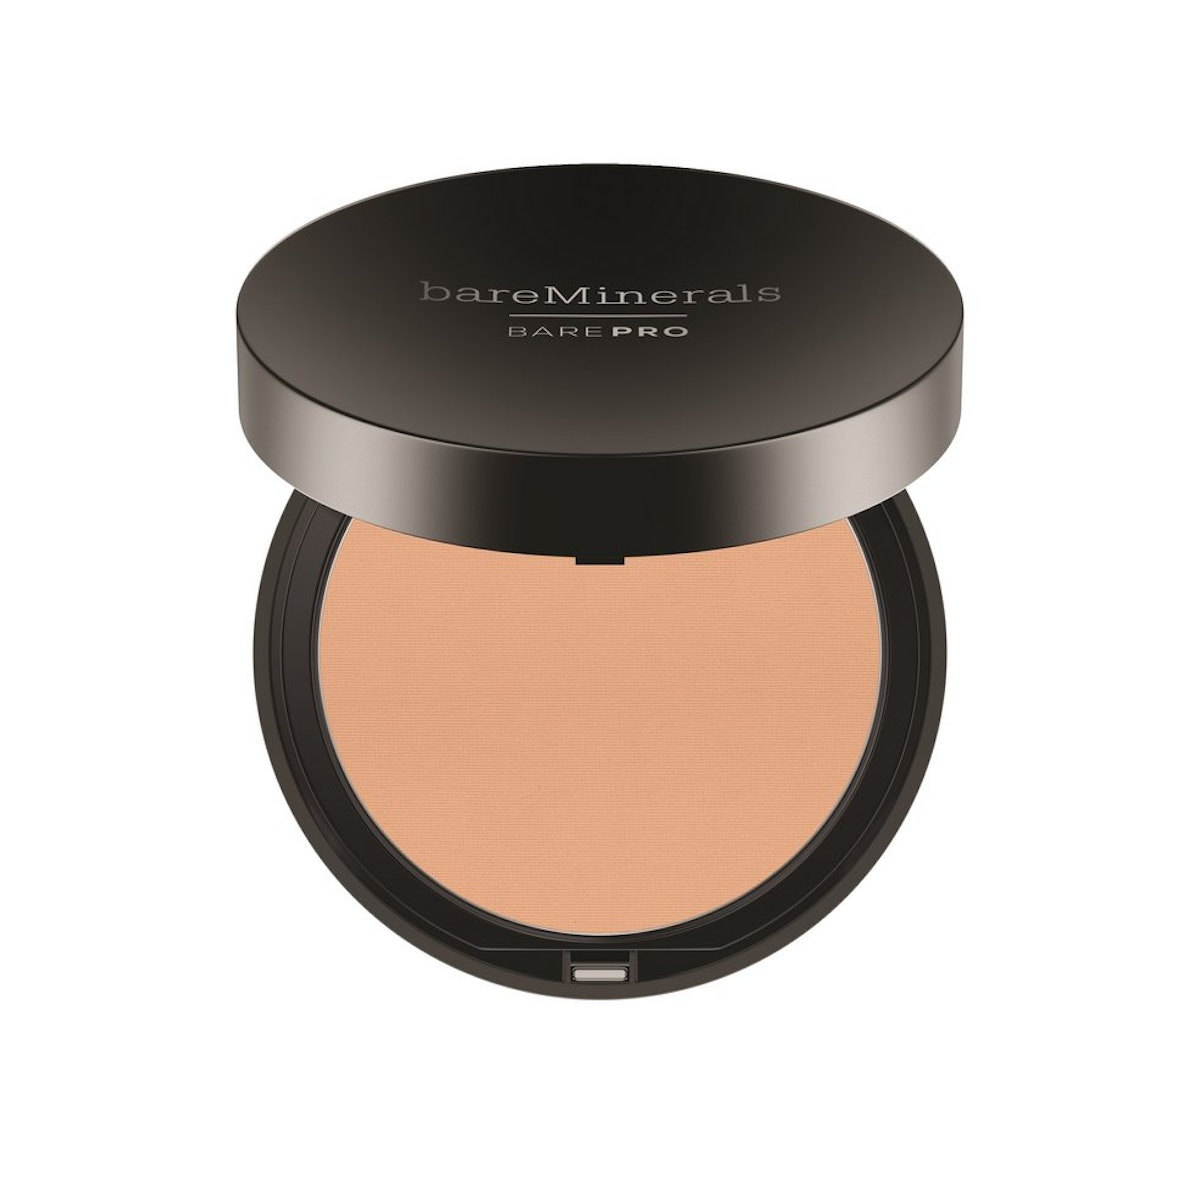 9 of the best autumn foundations for all skin tones